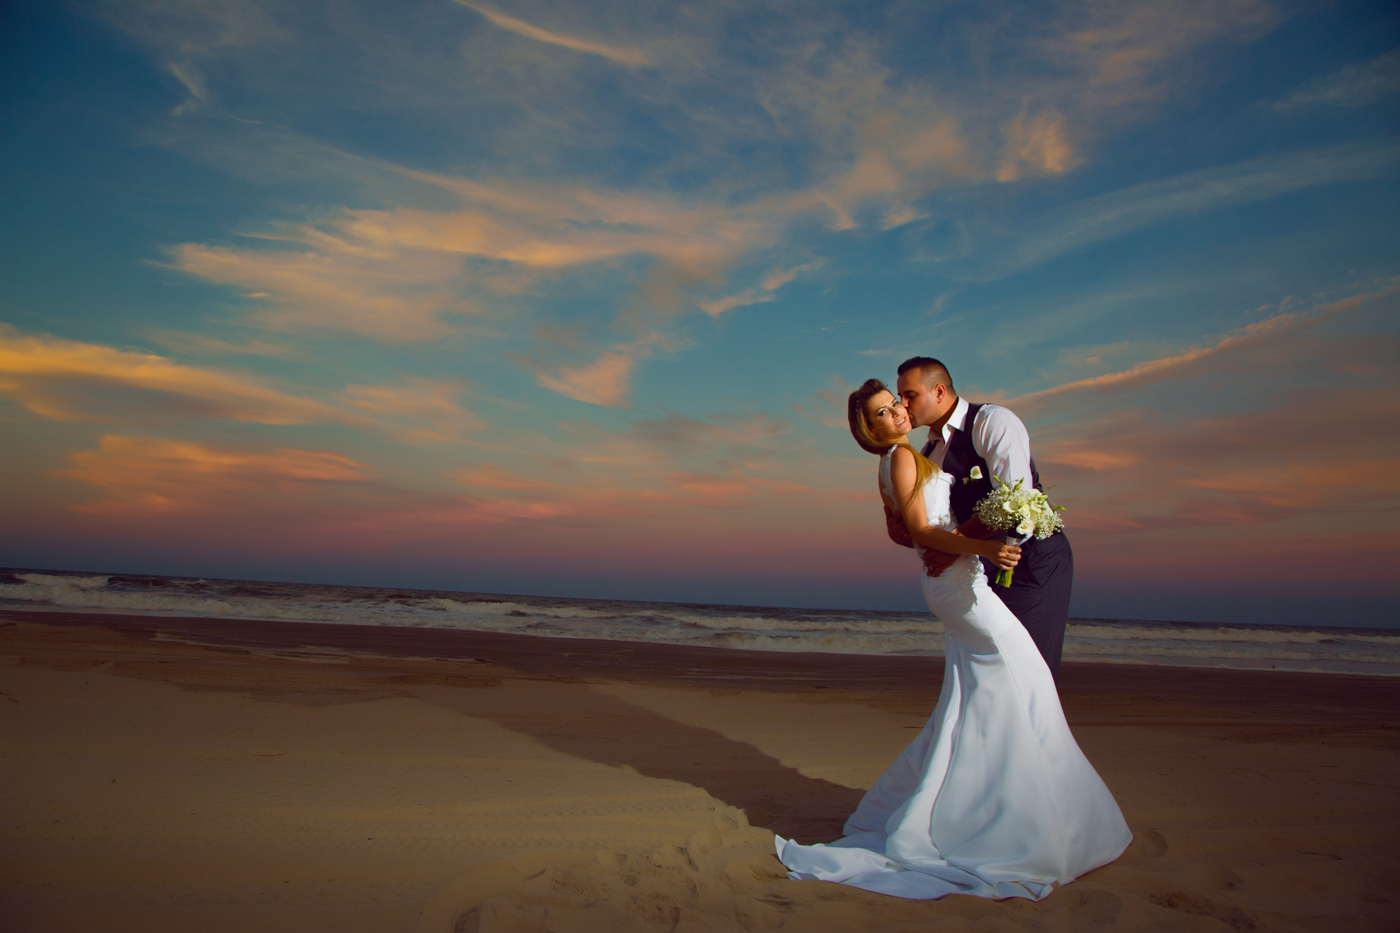 Beautiful Brazilian Beach Wedding North Carolina-Ksenia-Pro-Photography-60